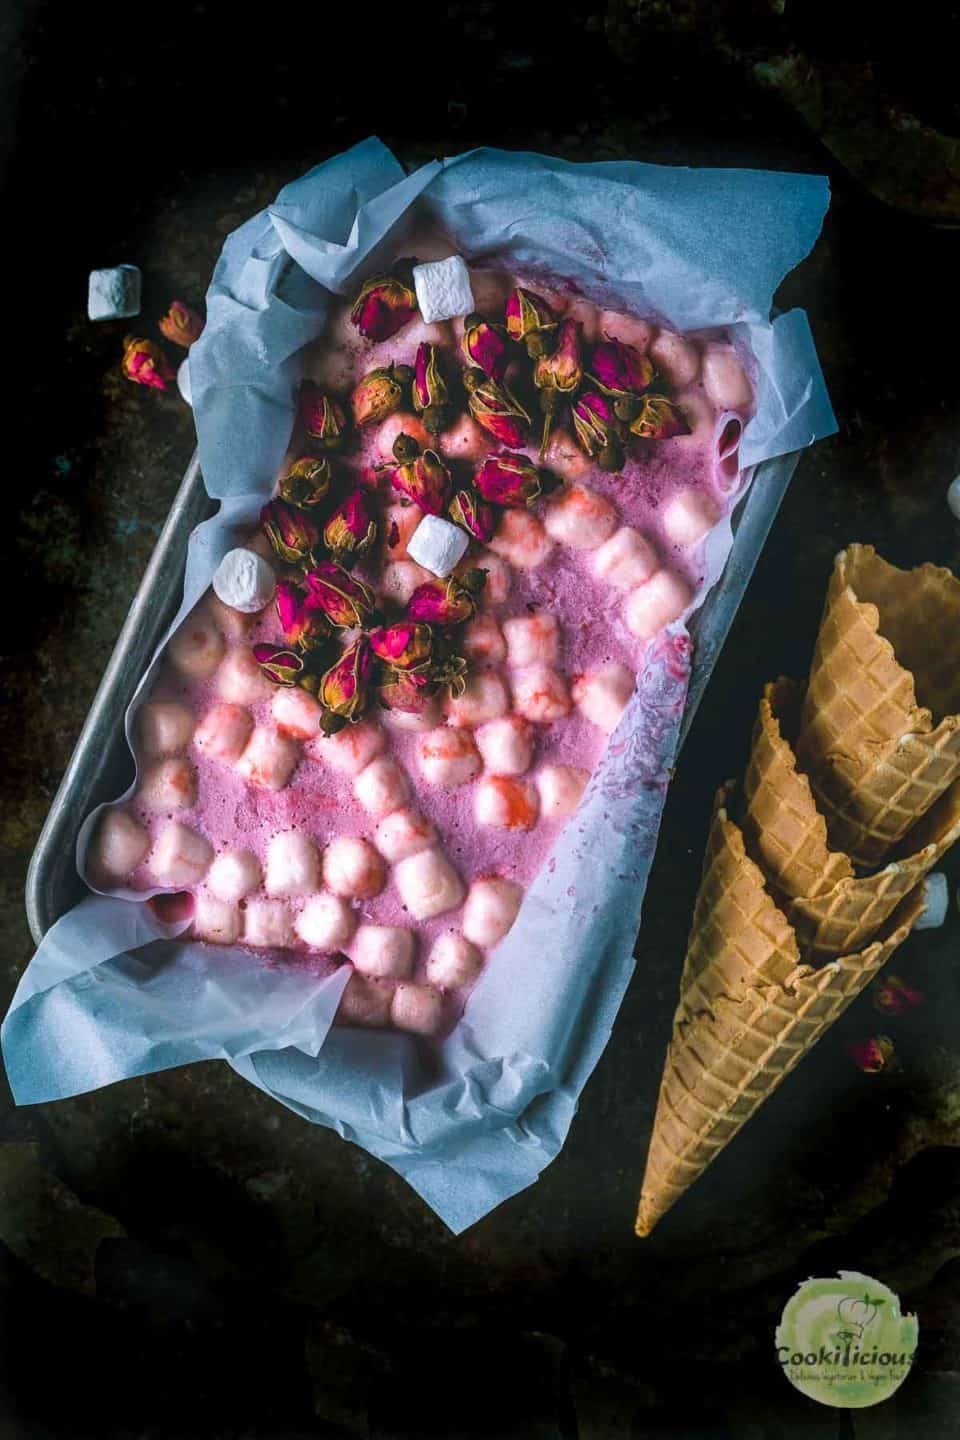 strawberry marshmallow ice cream set in a loaf pan with some cones next to it